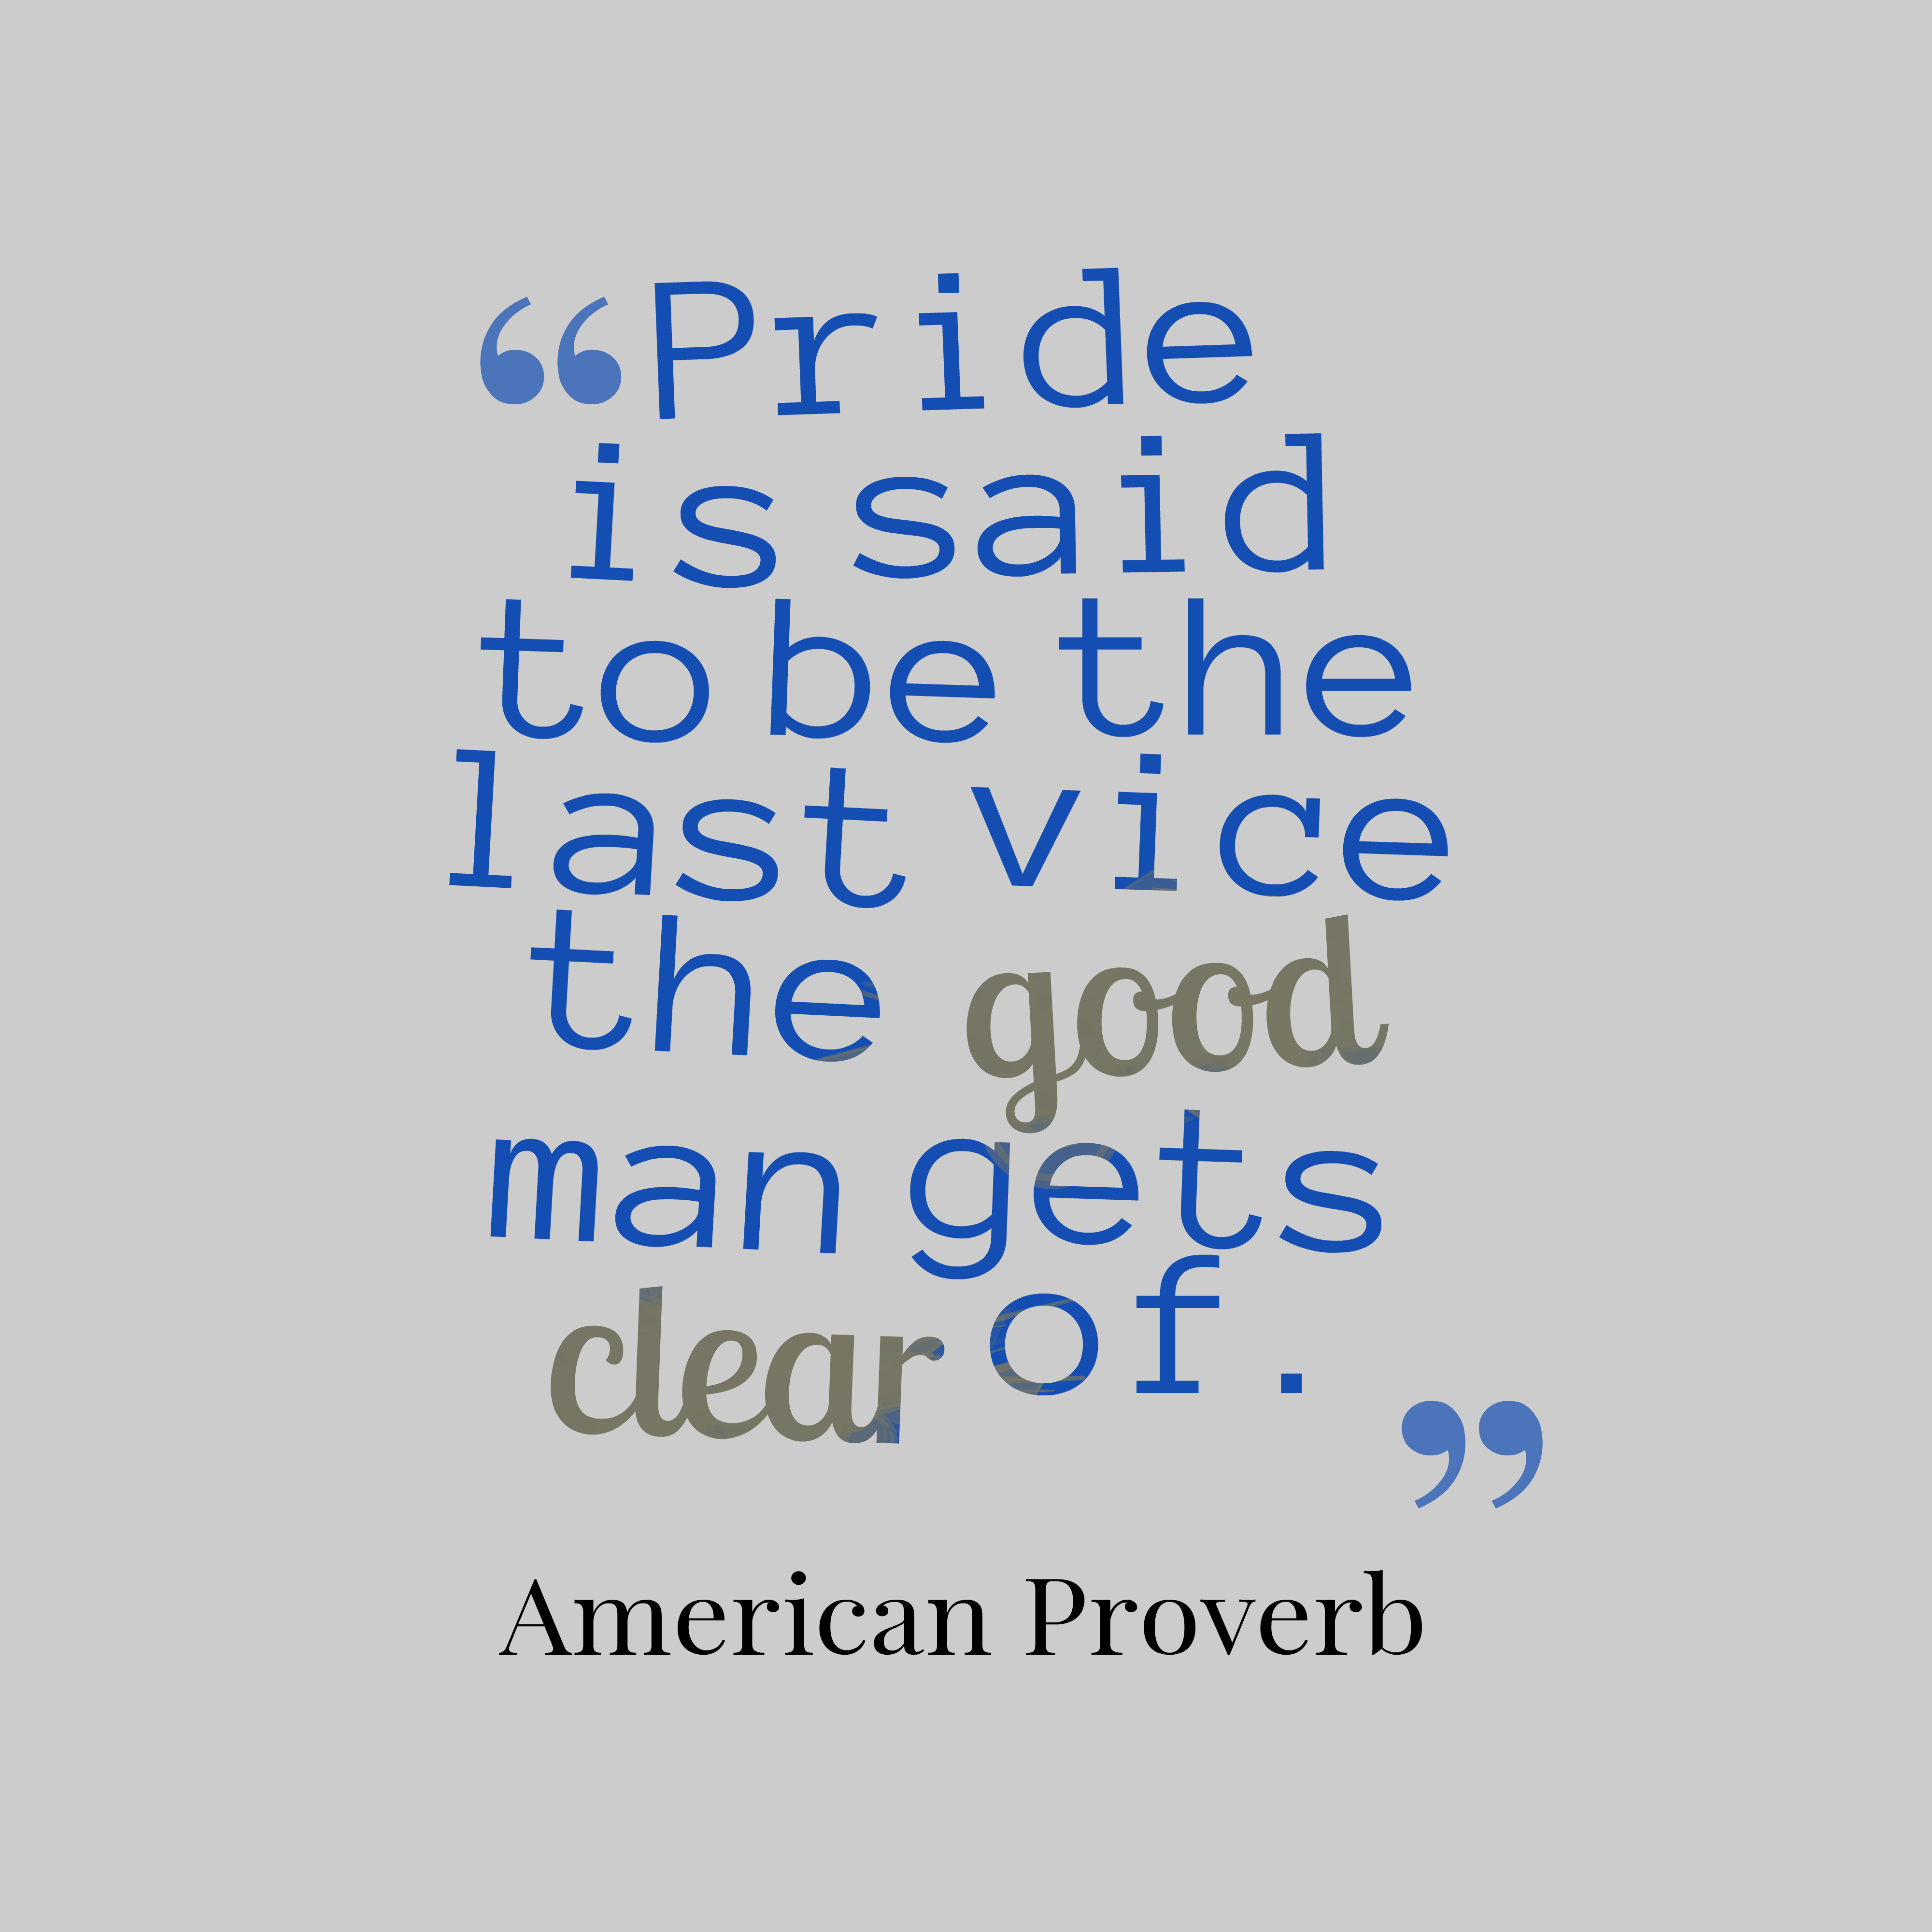 Quotes image of Pride is said to be the last vice the good man gets clear of.